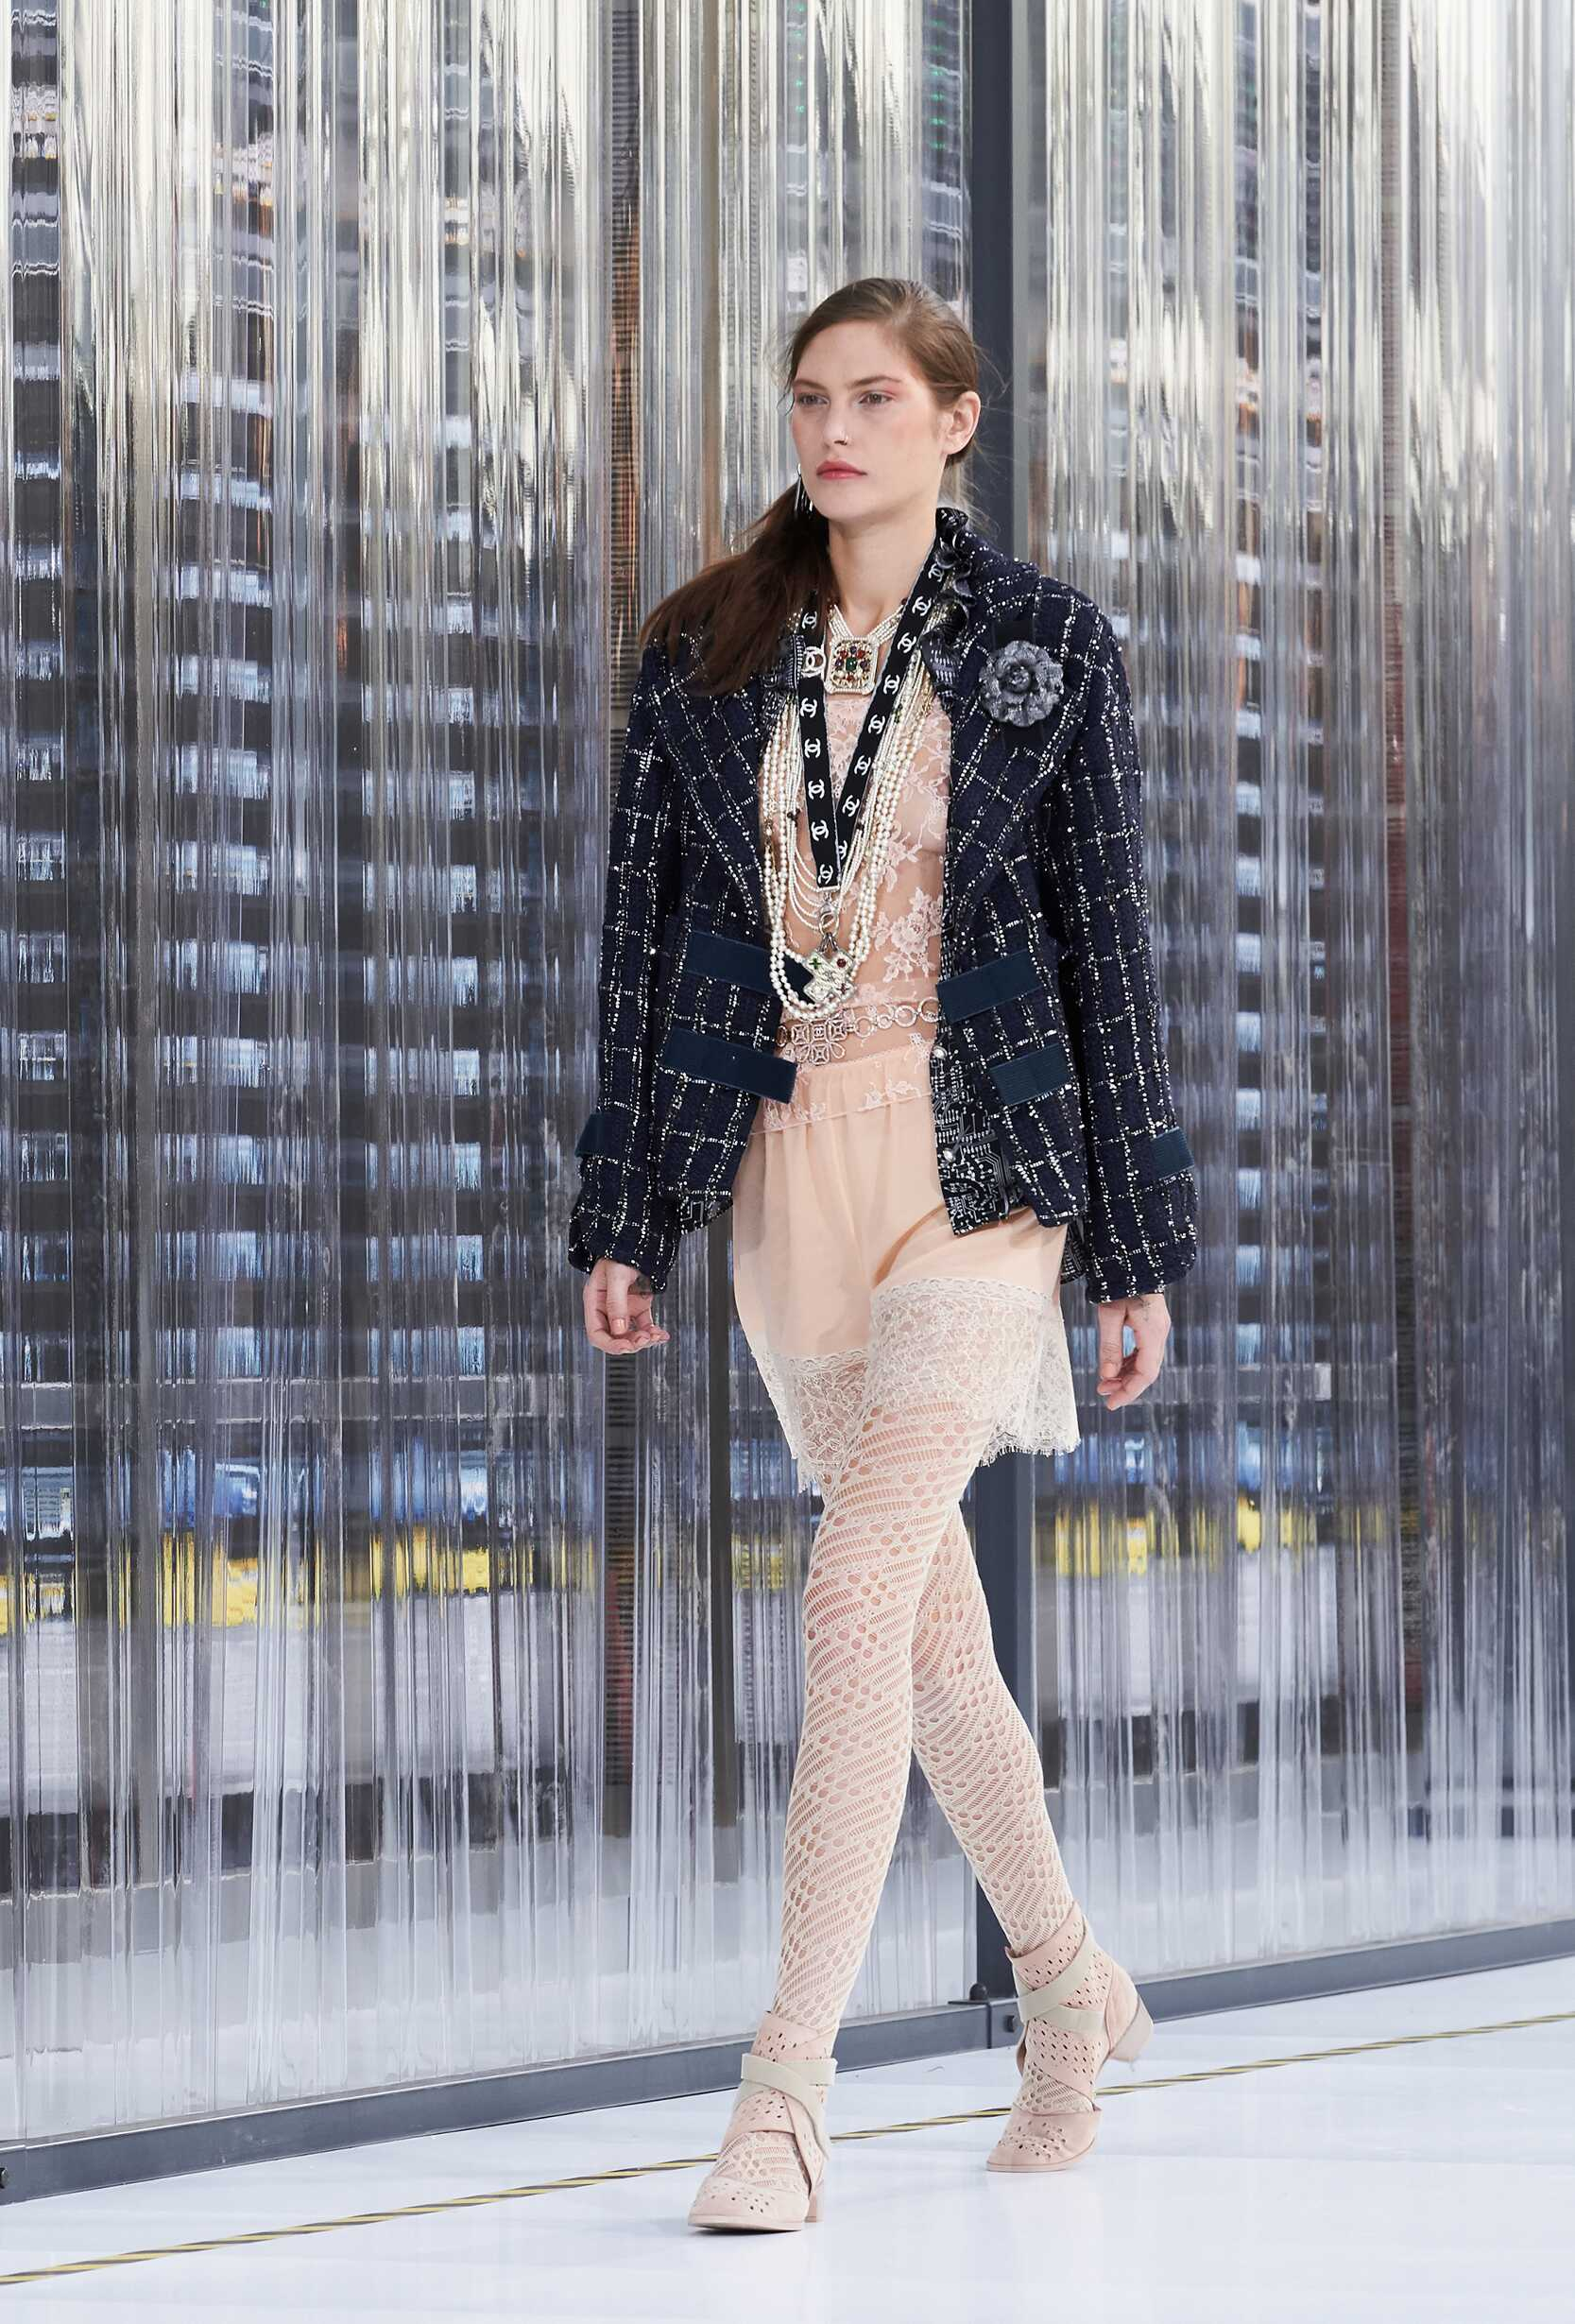 2017 Chanel Summer Runway Show